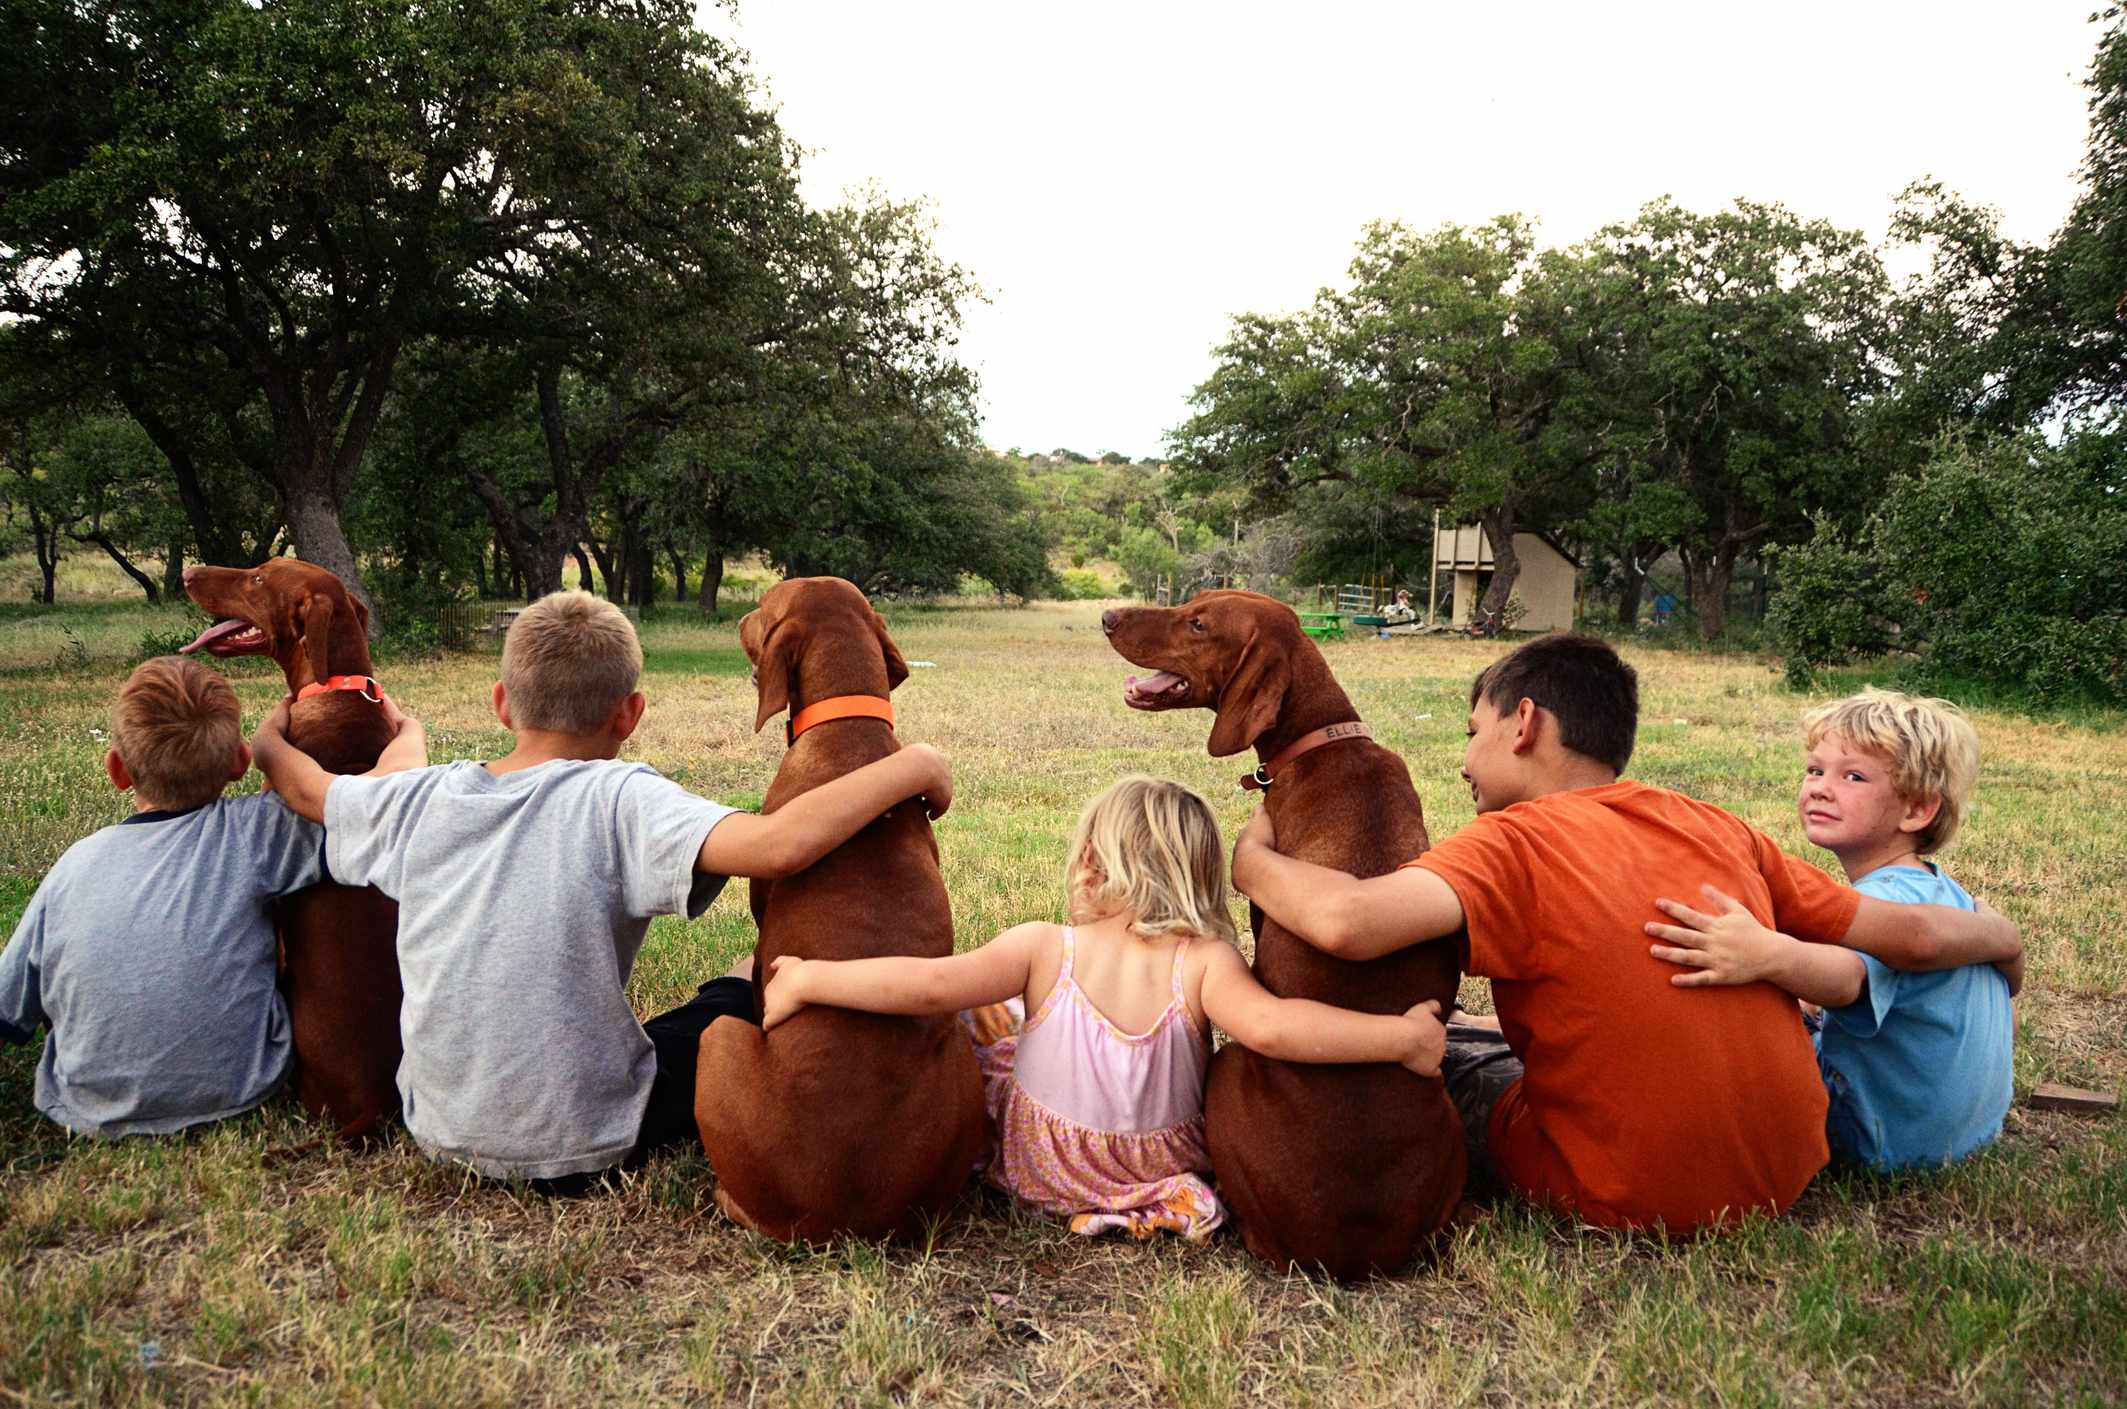 A group of five siblings, brothers and sister, sit in a grassy field with their arms wrapped around the backs of three Vizsla dogs. Four children sit facing away with fifth child's face towards camera. Dogs all wear collars. Green grass field, oak trees and rural country setting.